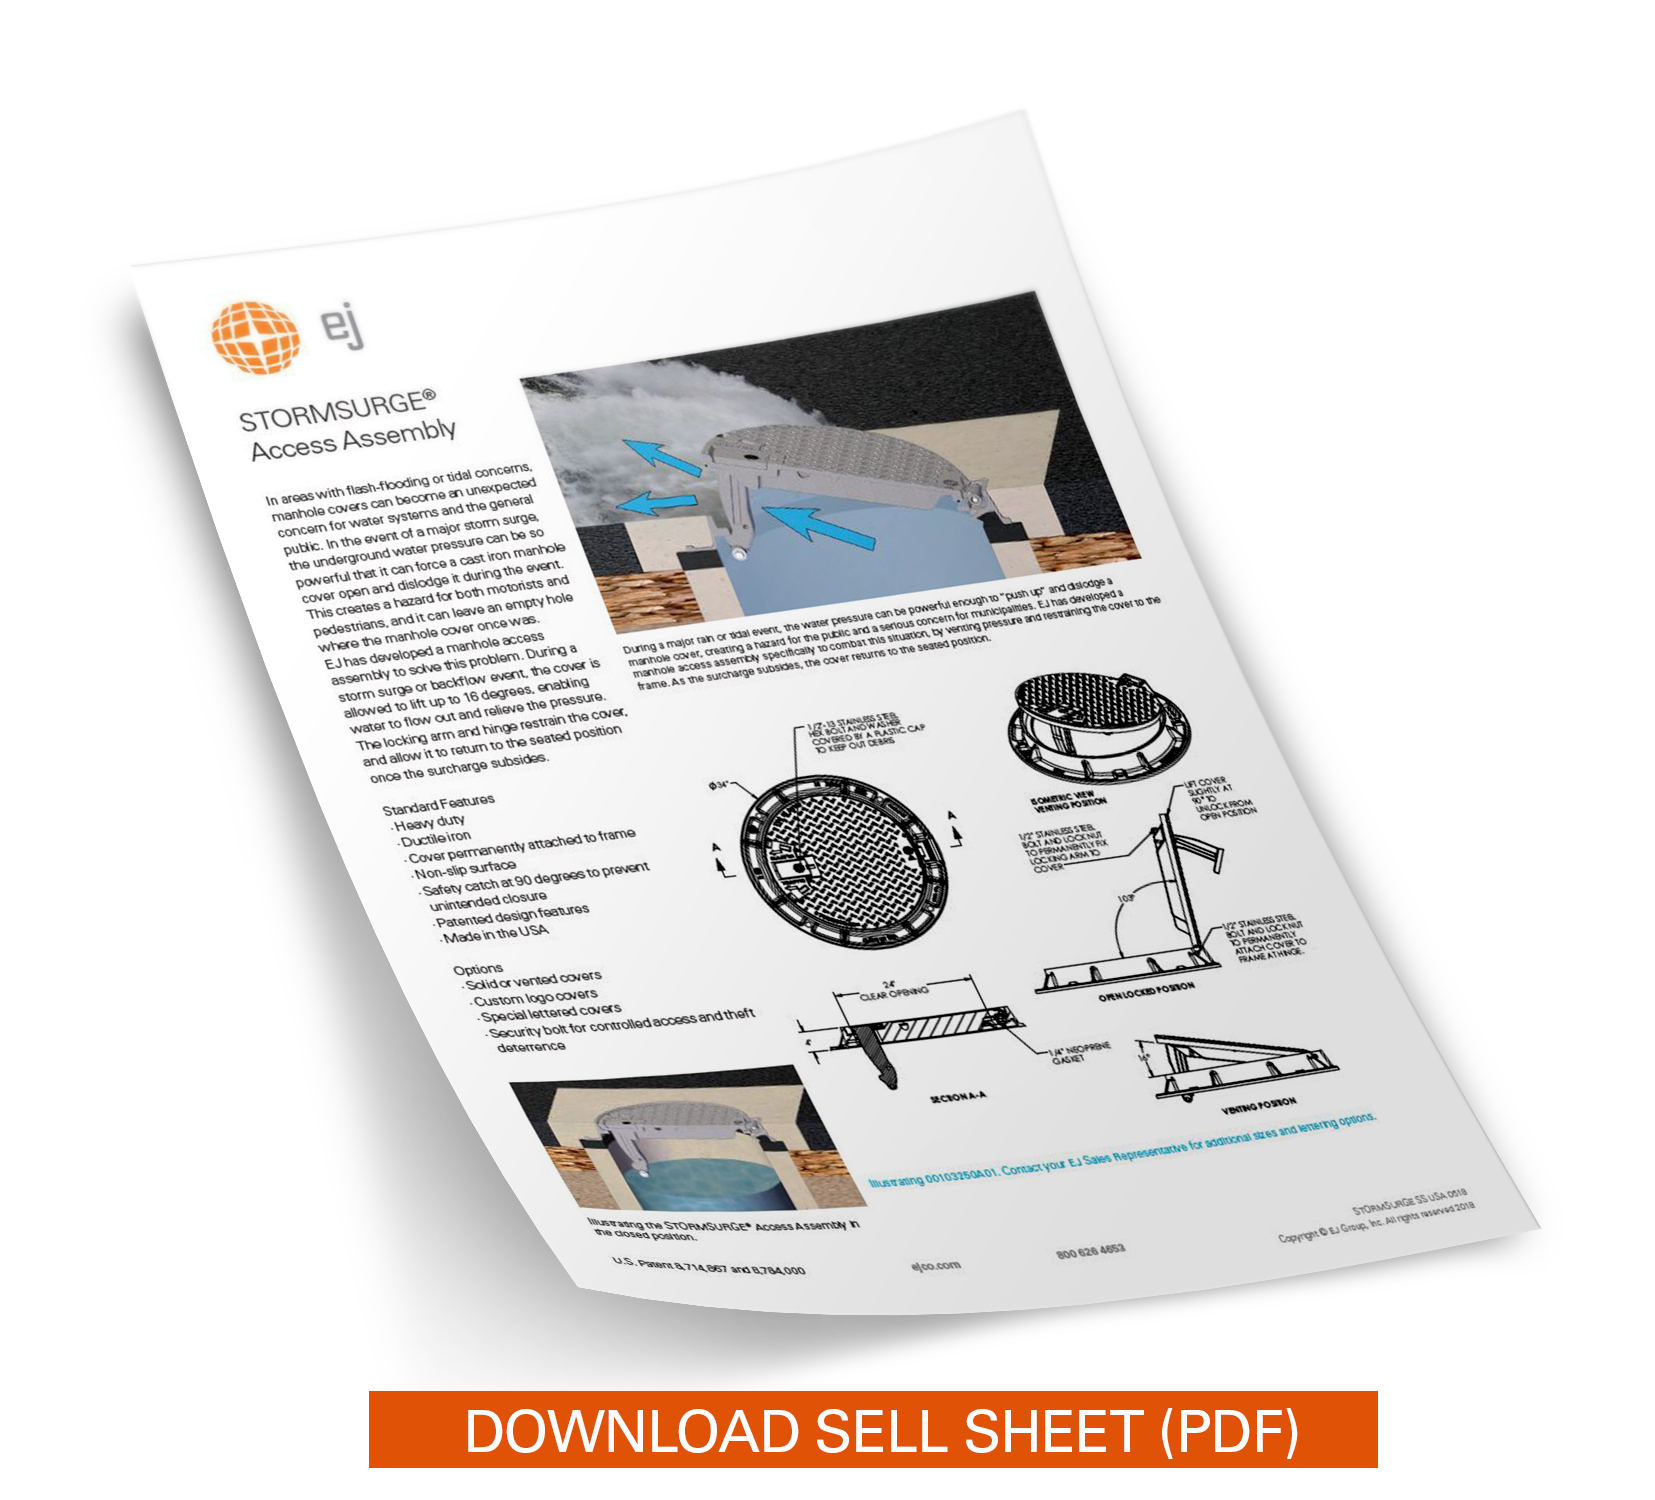 sell_sheet_onepage_download4